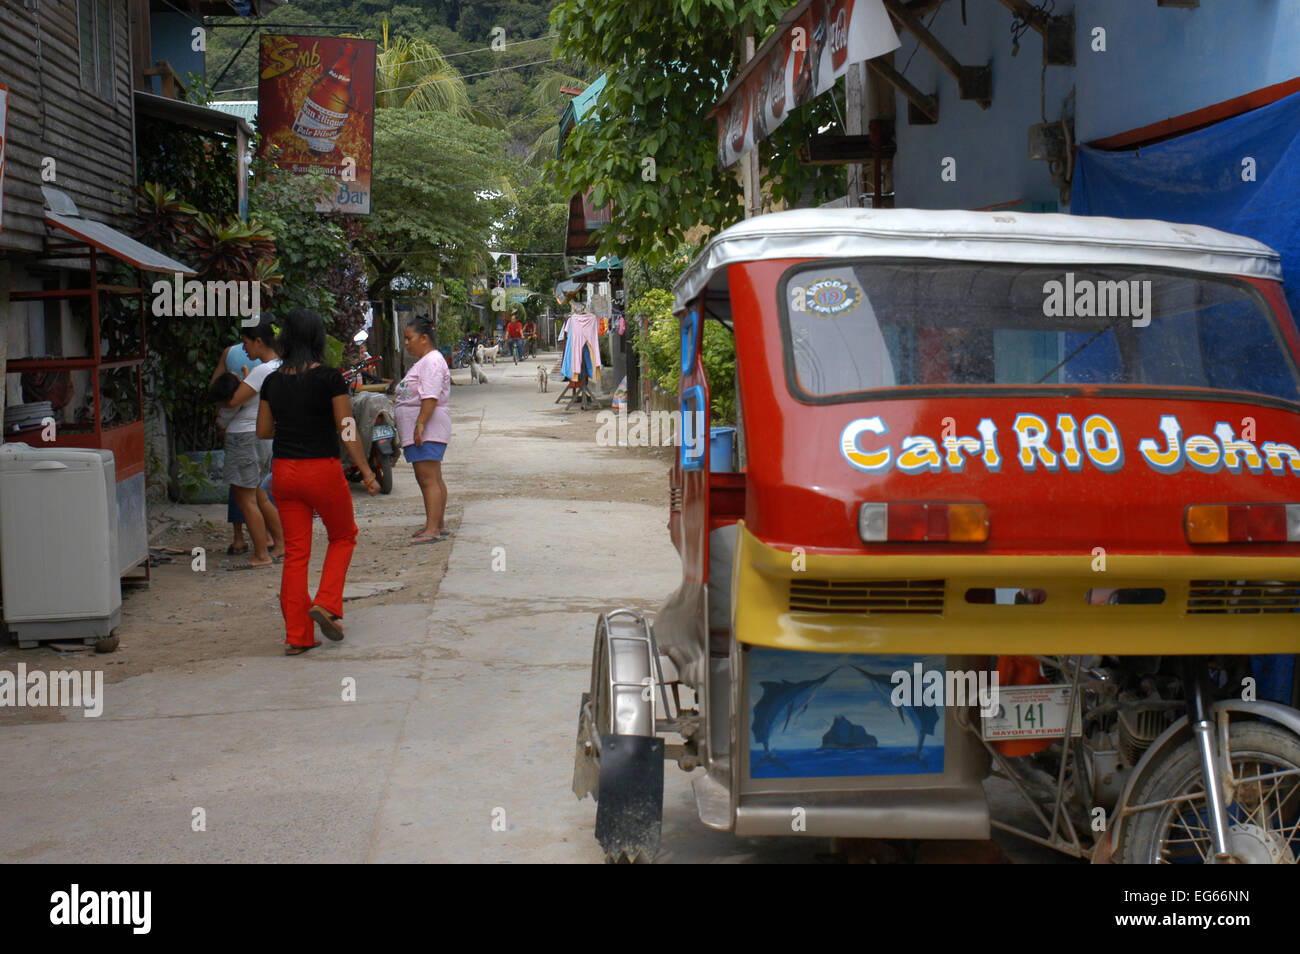 Tuc tuc. Streets of the village El Nido. Philippines. El Nido (officially the Municipality of El Nido) is a first - Stock Image